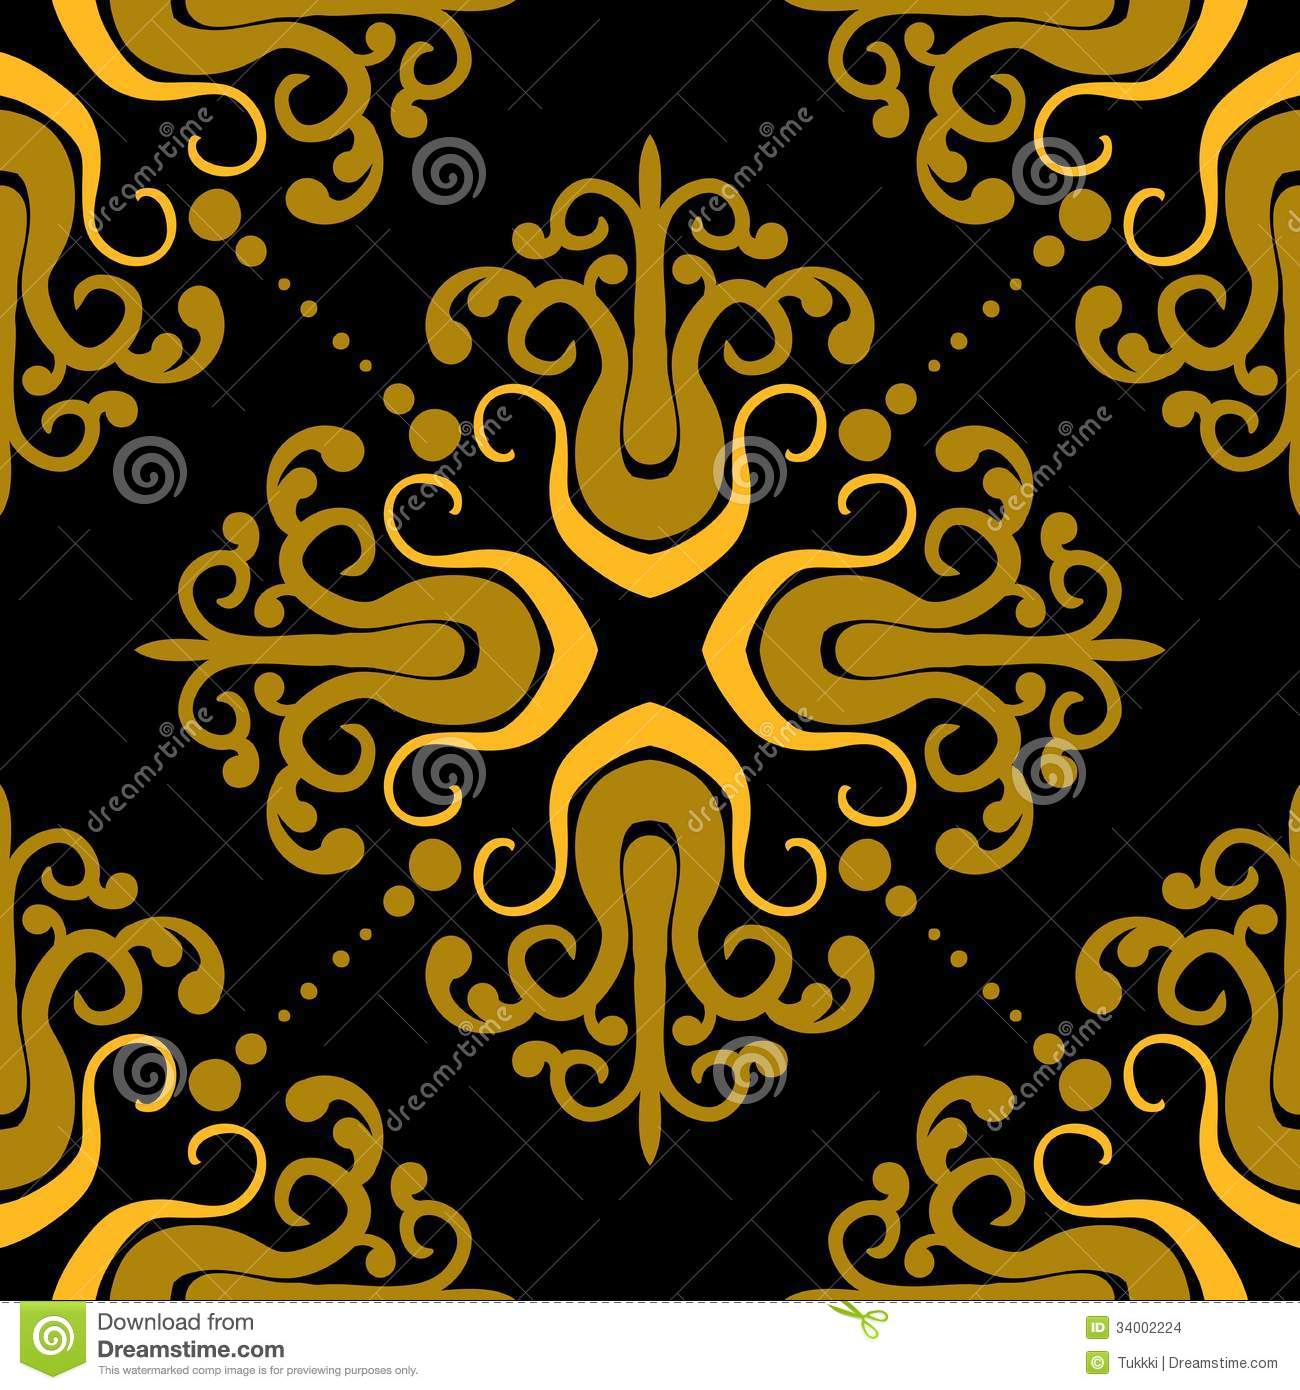 Black And Gold Wallpapers   HD Wallpapers Pretty 1300x1390